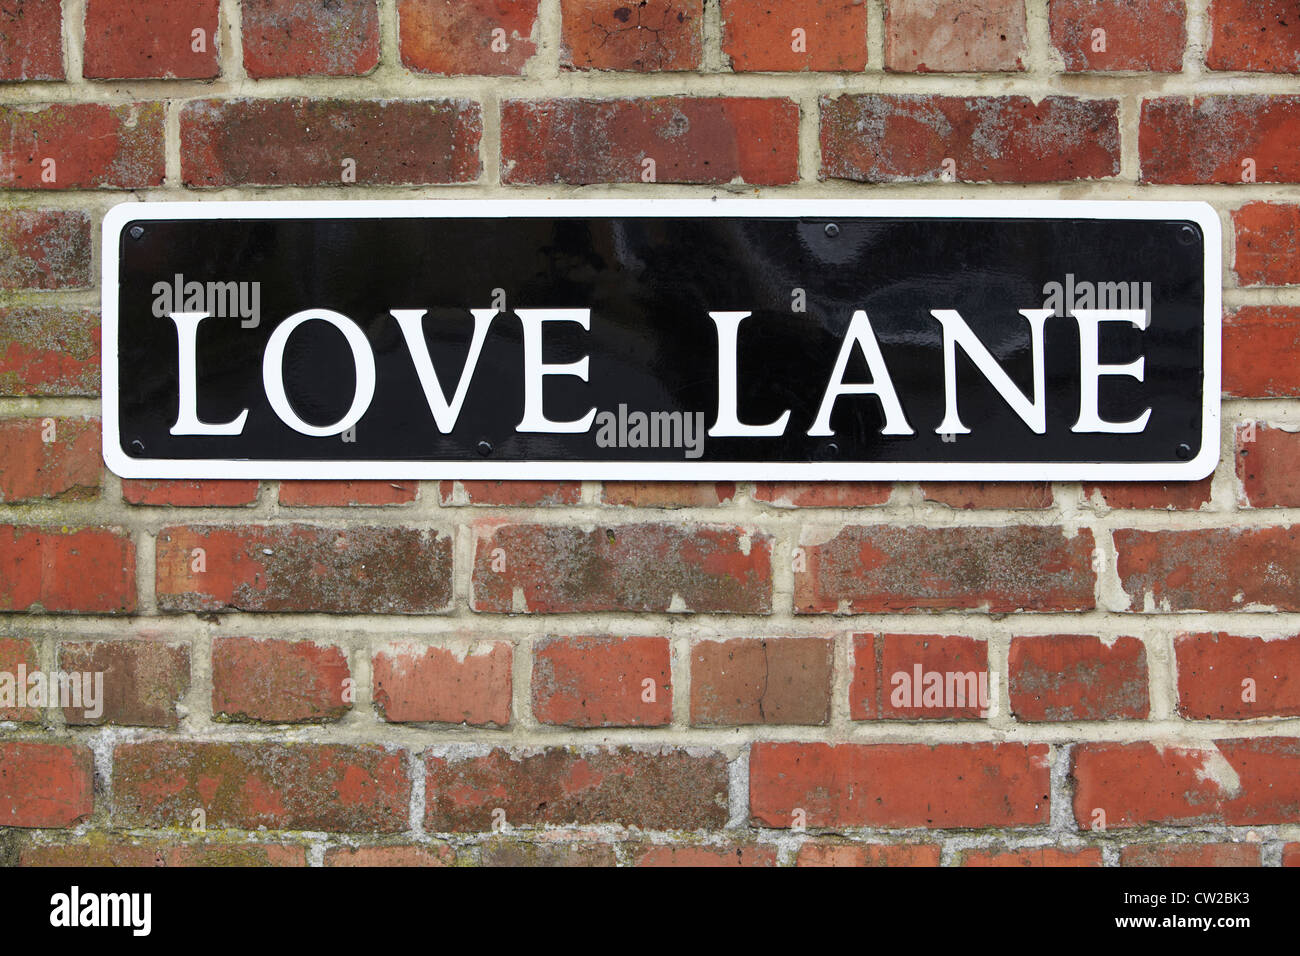 Street Sign For Love Lane On Brick Wall - Stock Image